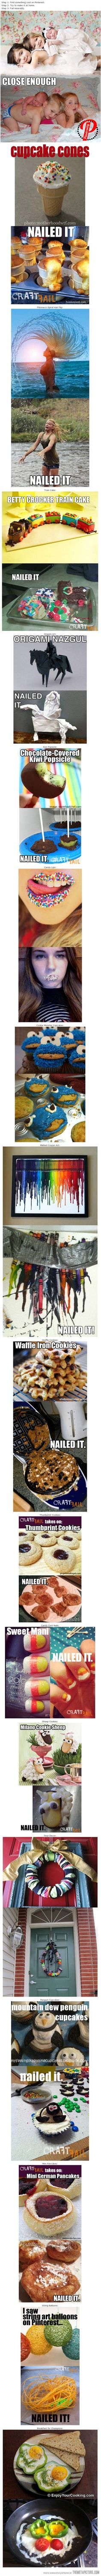 Hilarious!! Pinterest fails!